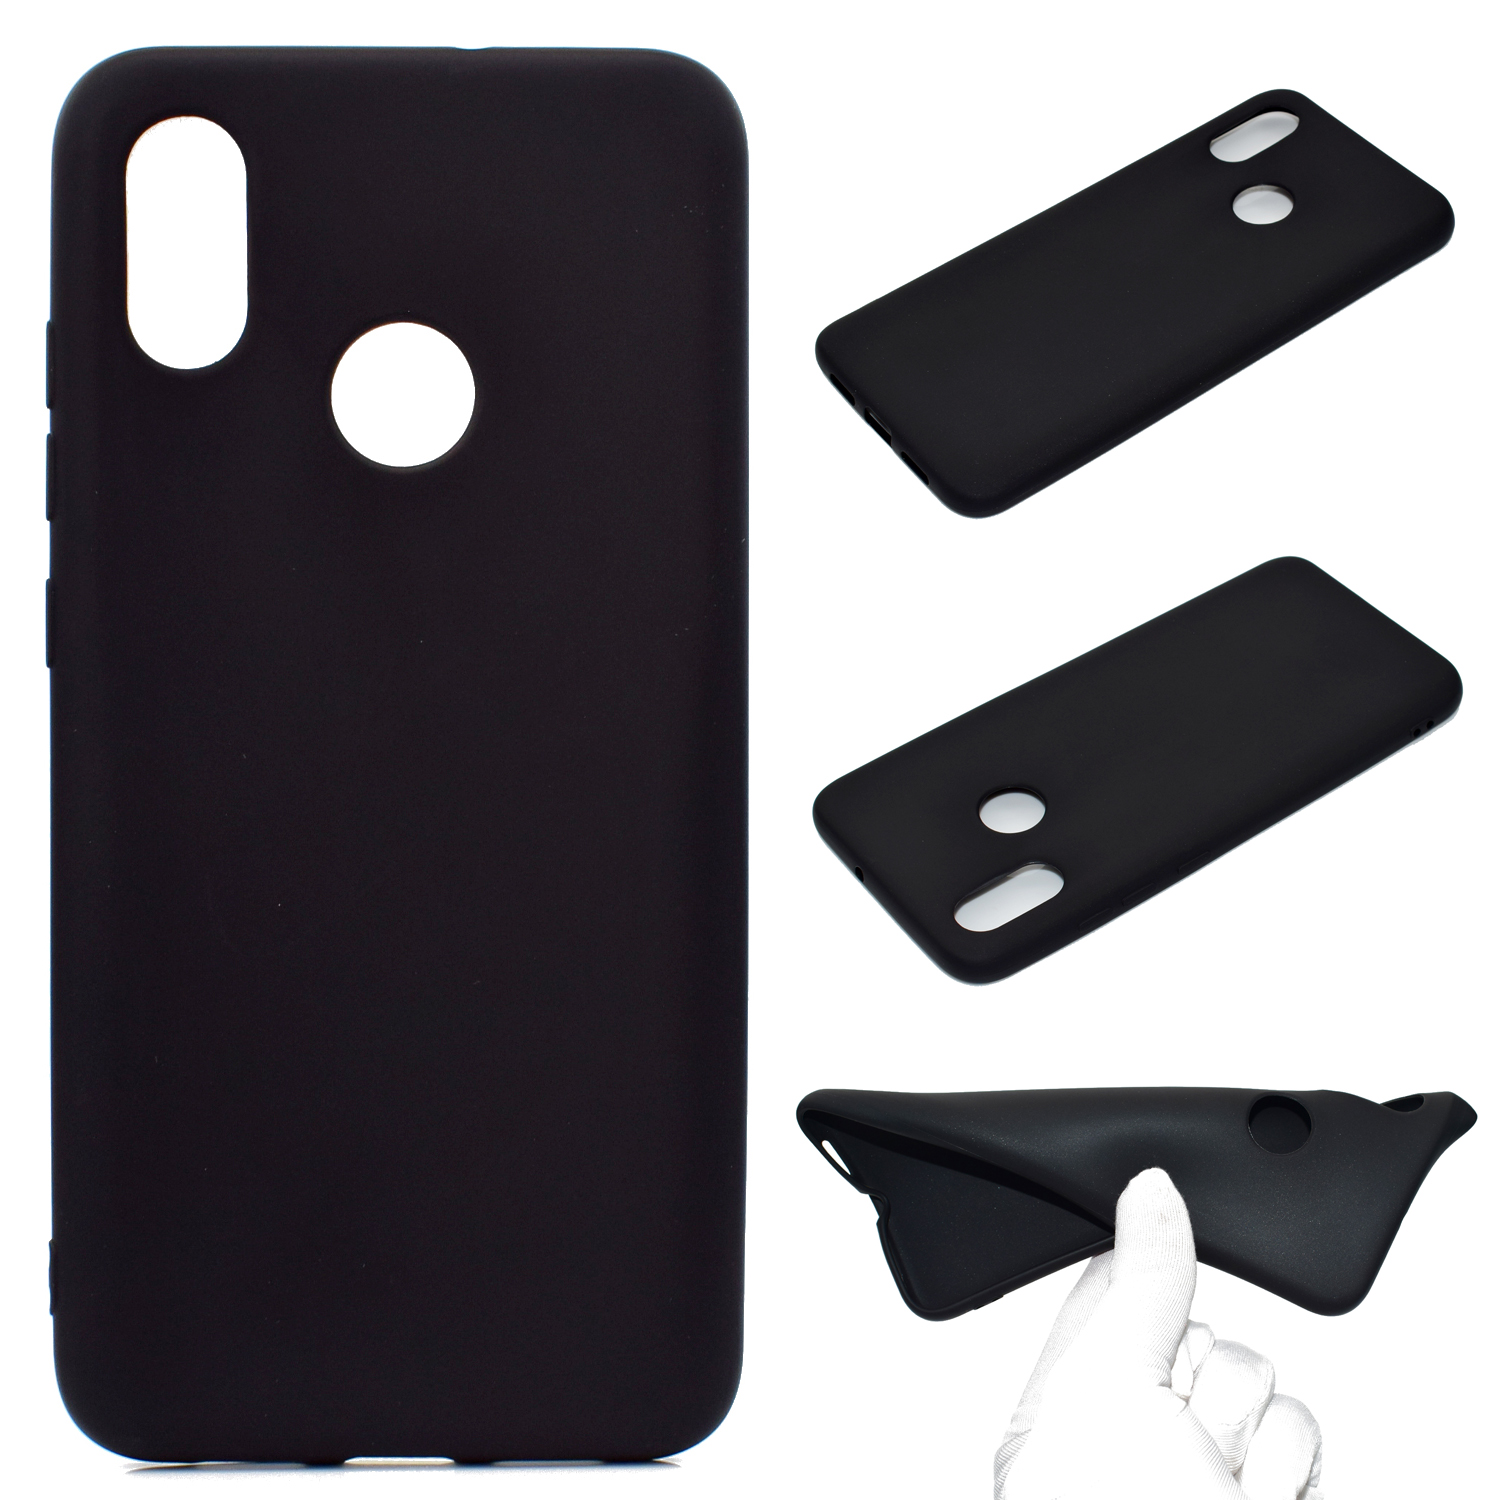 for XIAOMI Redmi S2 Lovely Candy Color Matte TPU Anti-scratch Non-slip Protective Cover Back Case black